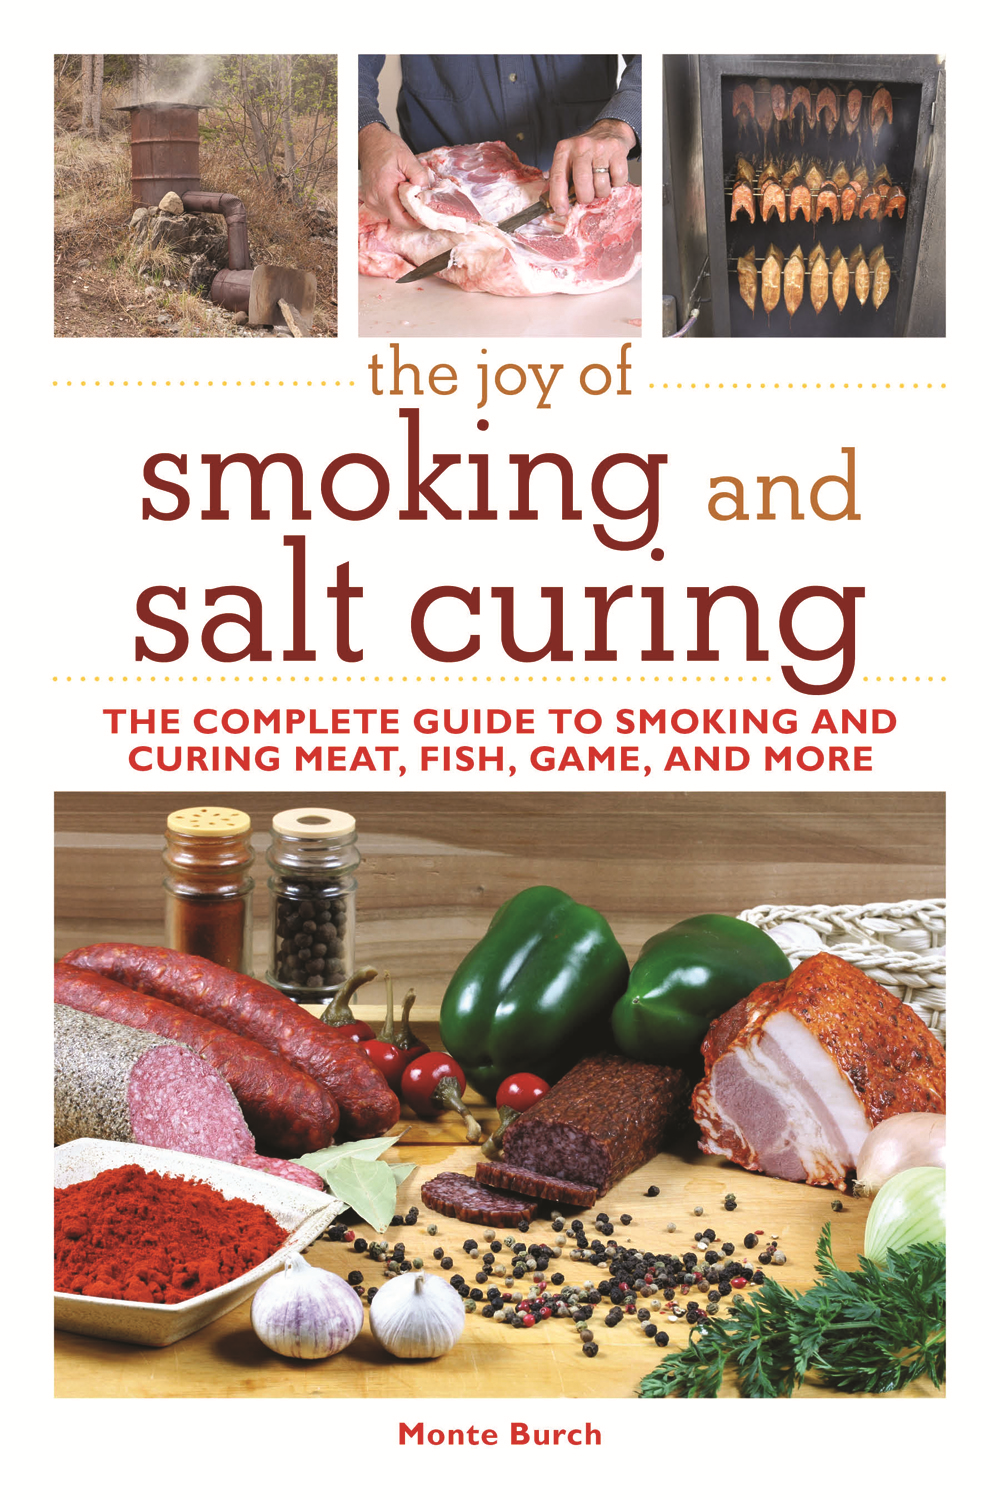 The Joy of Smoking and Salt Curing: The Complete Guide to Smoking and Curing Meat, Fish, Game, and More